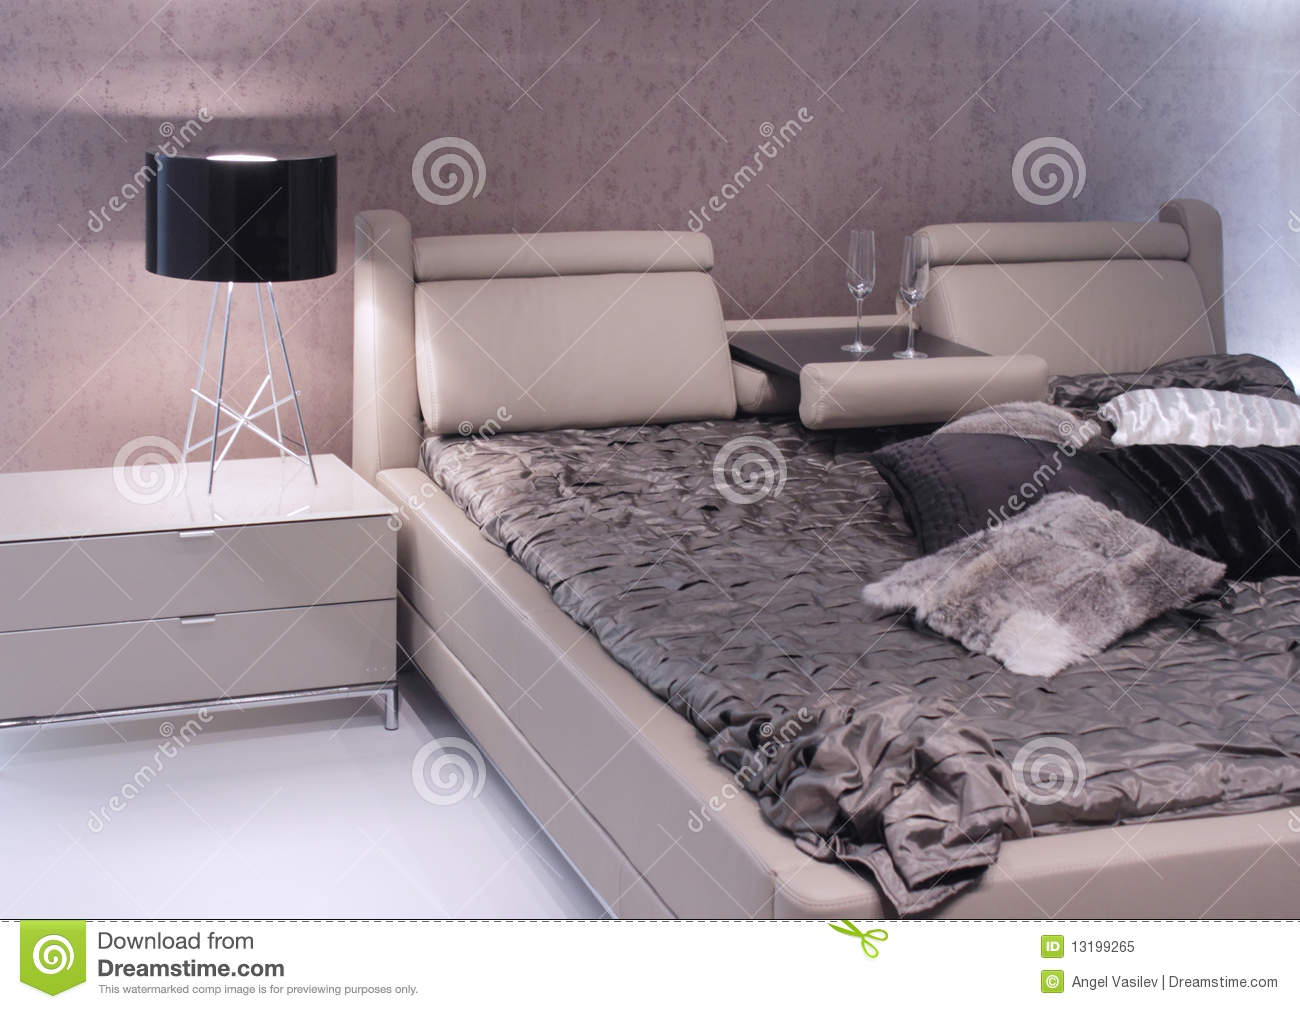 Modern bedroom interior design.